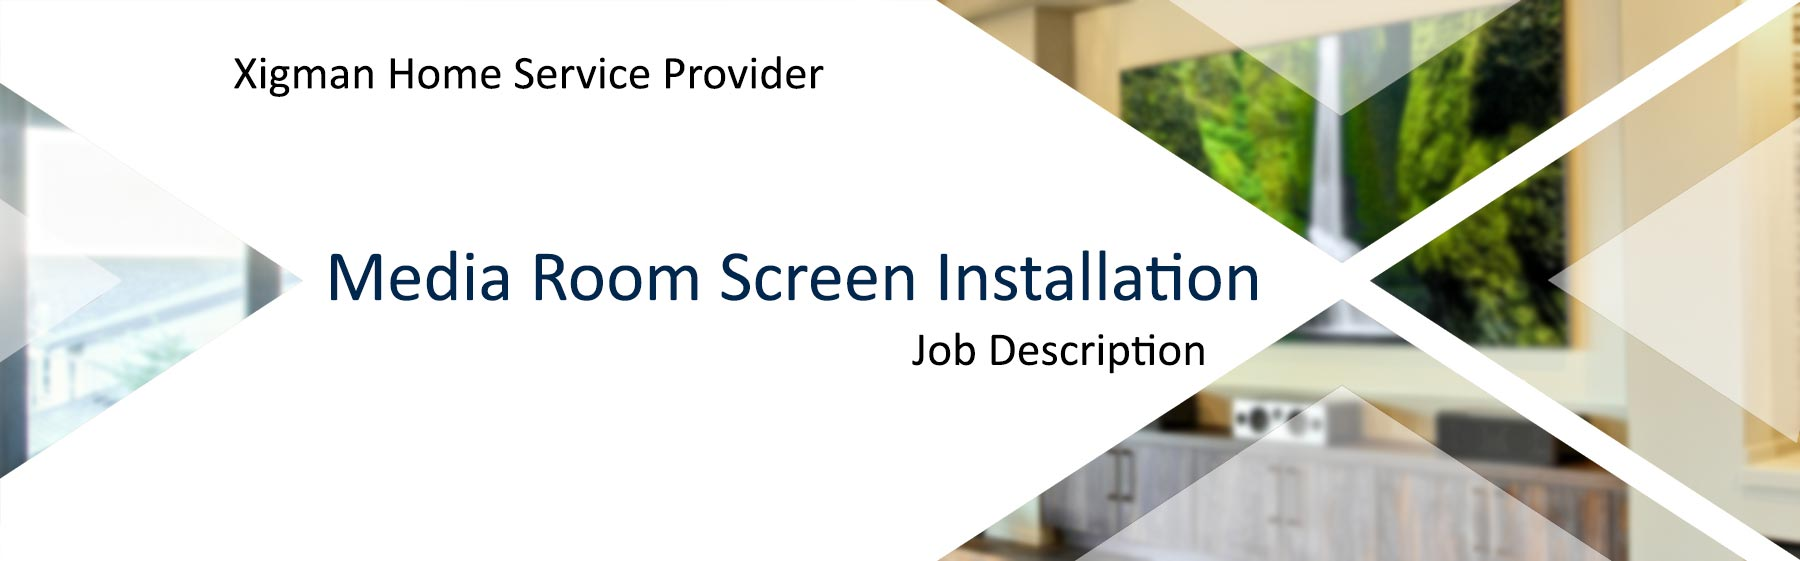 media-room-screem-installation-job-description-header